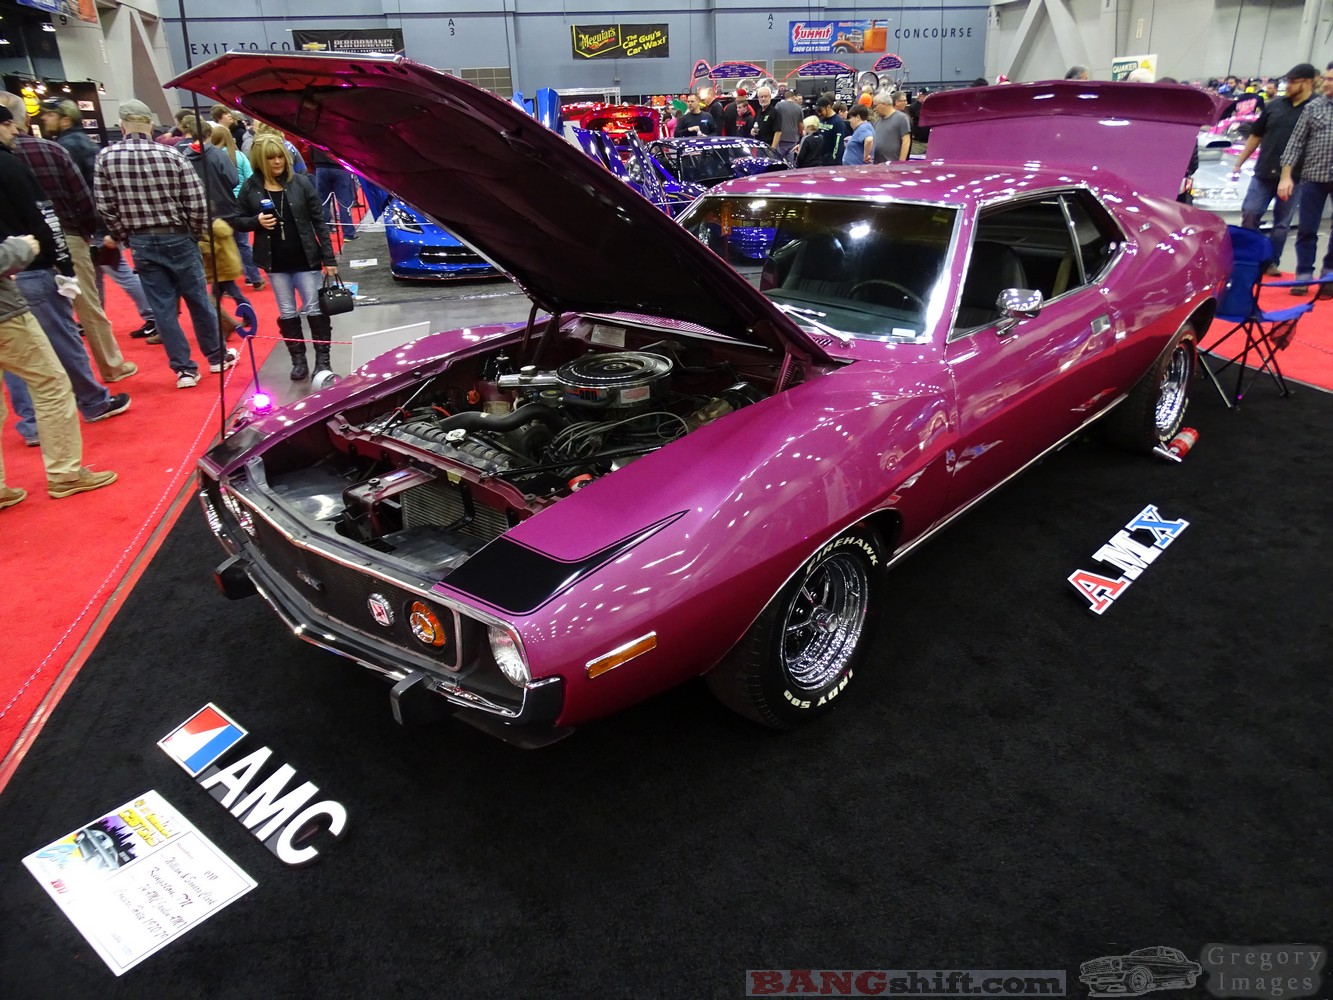 Cincinnati Cavalcade Of Customs: Muscle Cars From Wall To Wall In This Photo Collection